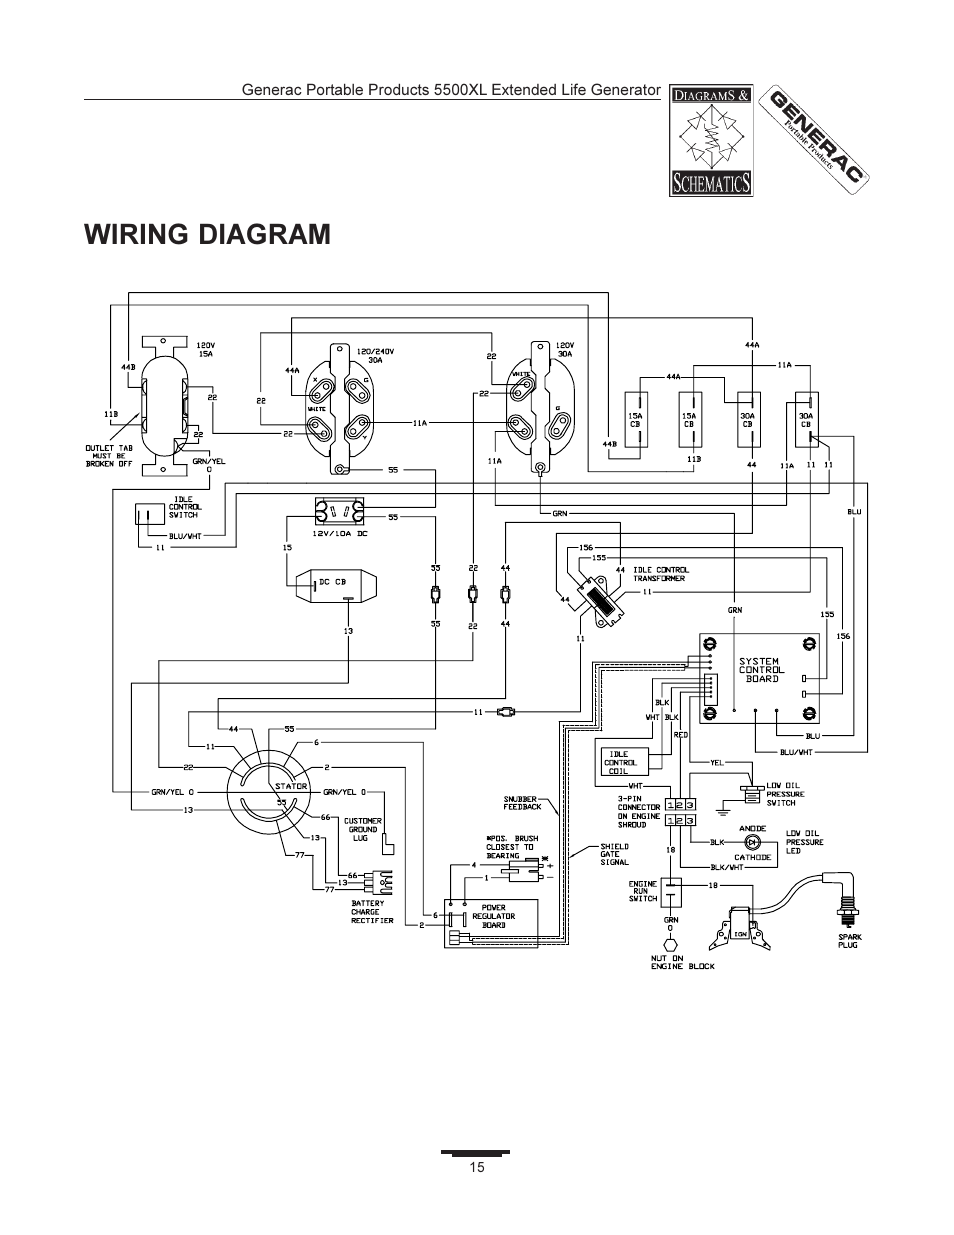 Wiring Diagram Generac Generator : Generac xl wiring diagram power washer